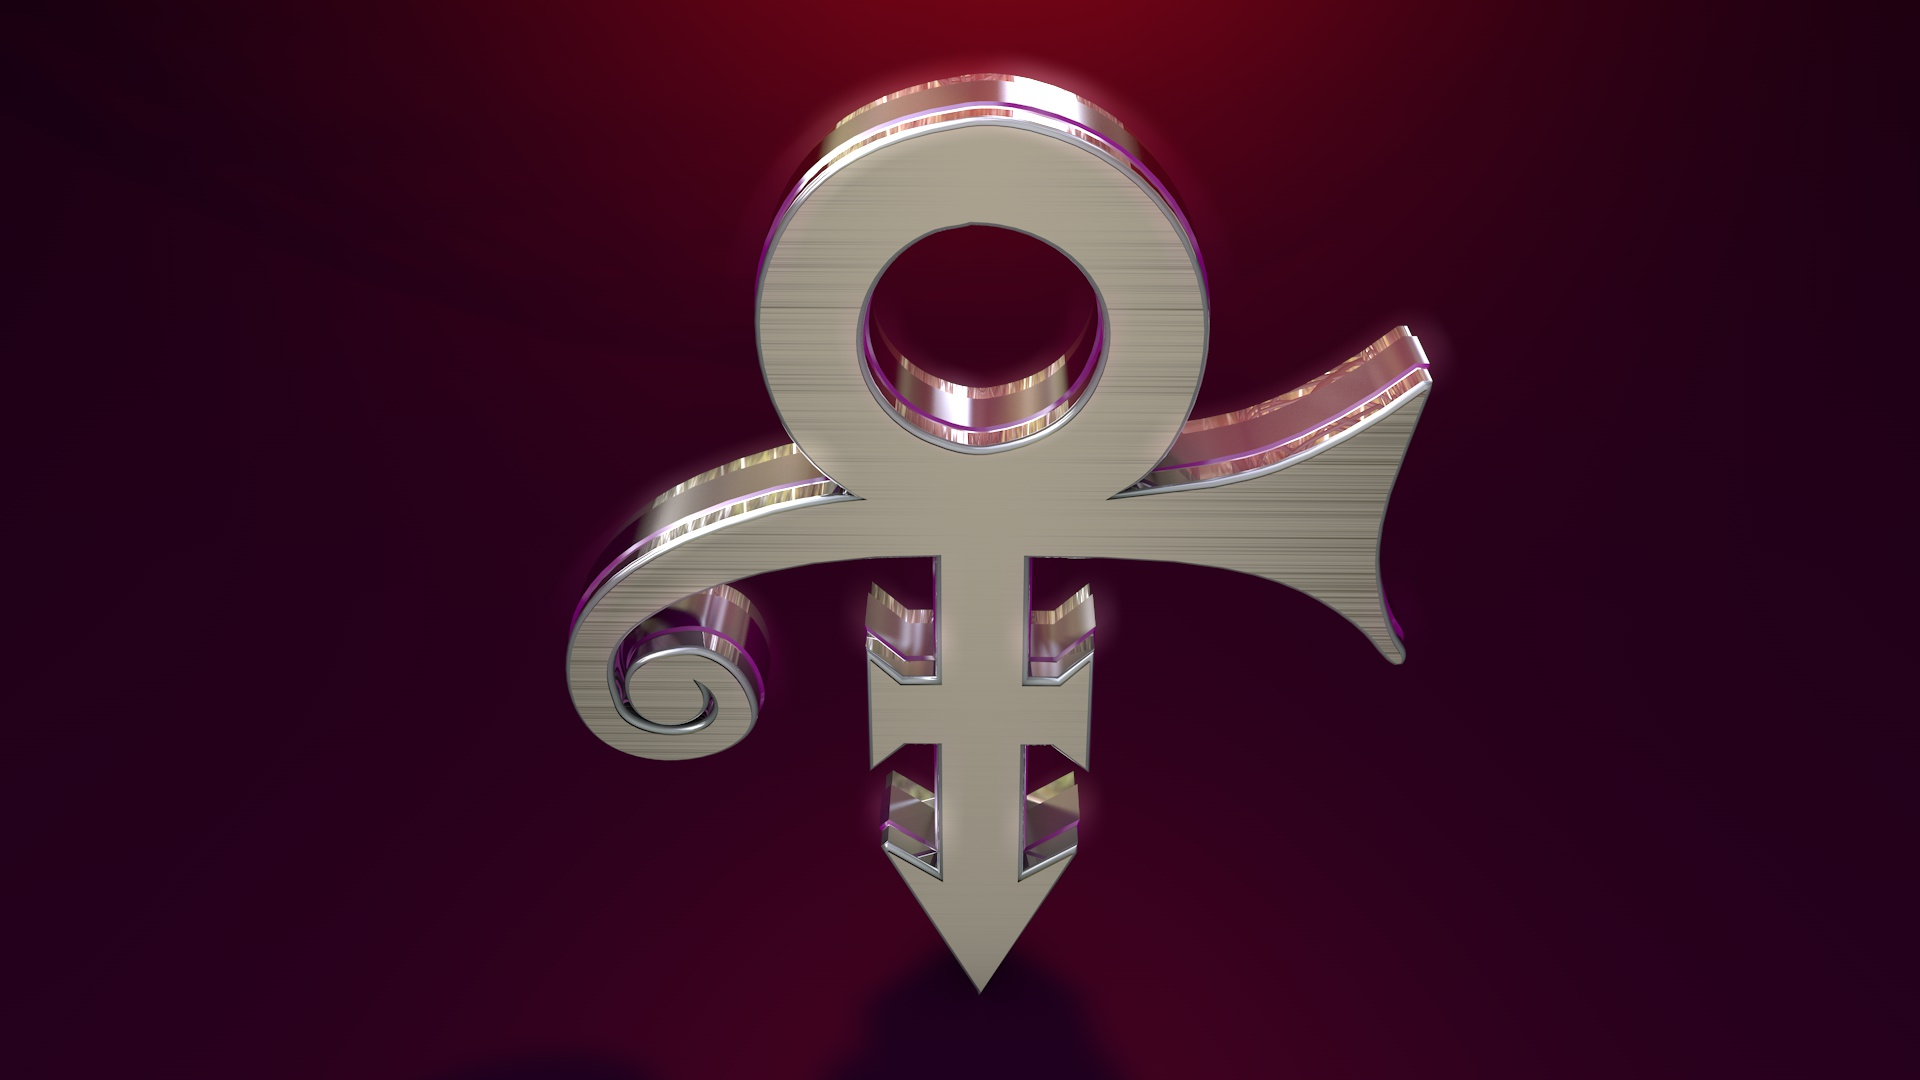 Love Symbol Wallpaper In Hd : Prince Logo Wallpaper - WallpaperSafari